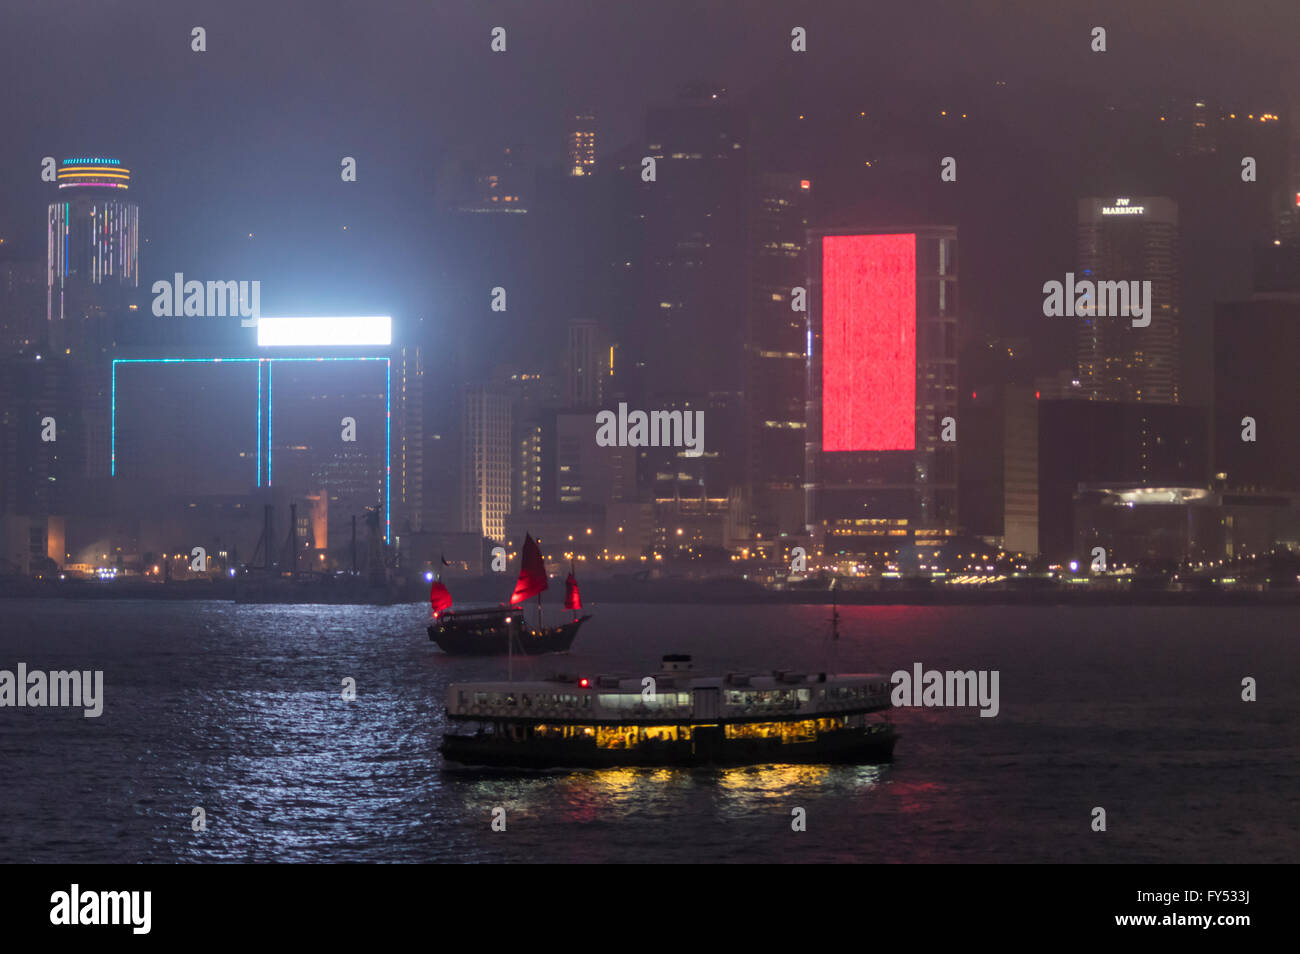 A Star Ferry and junk crossing Victoria Harbour between Hong Kong Island and Kowloon at night. - Stock Image